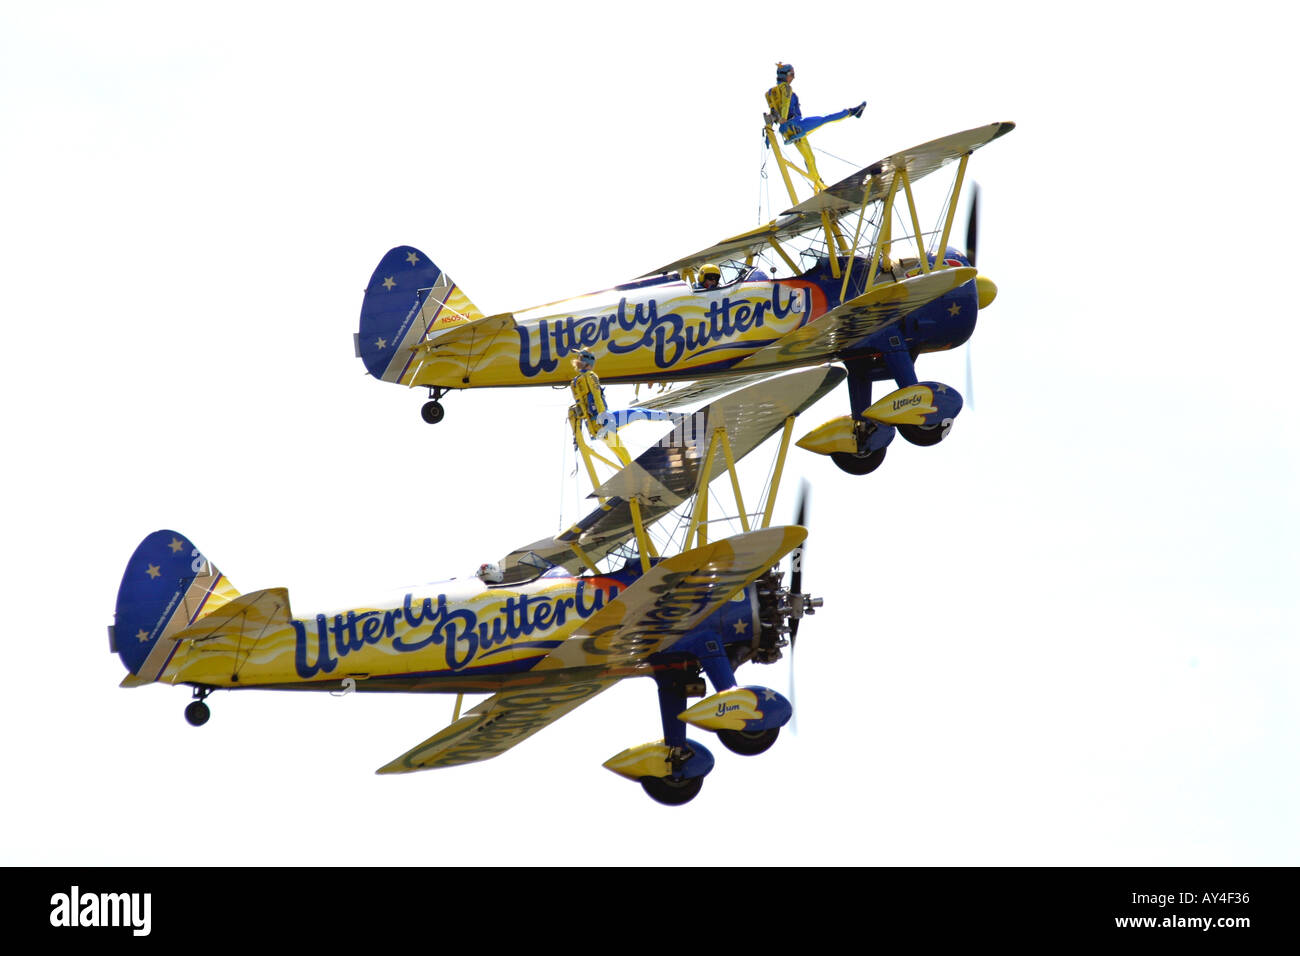 Uttlerly Butterly wing walkers at 2004 airshow  - Stock Image